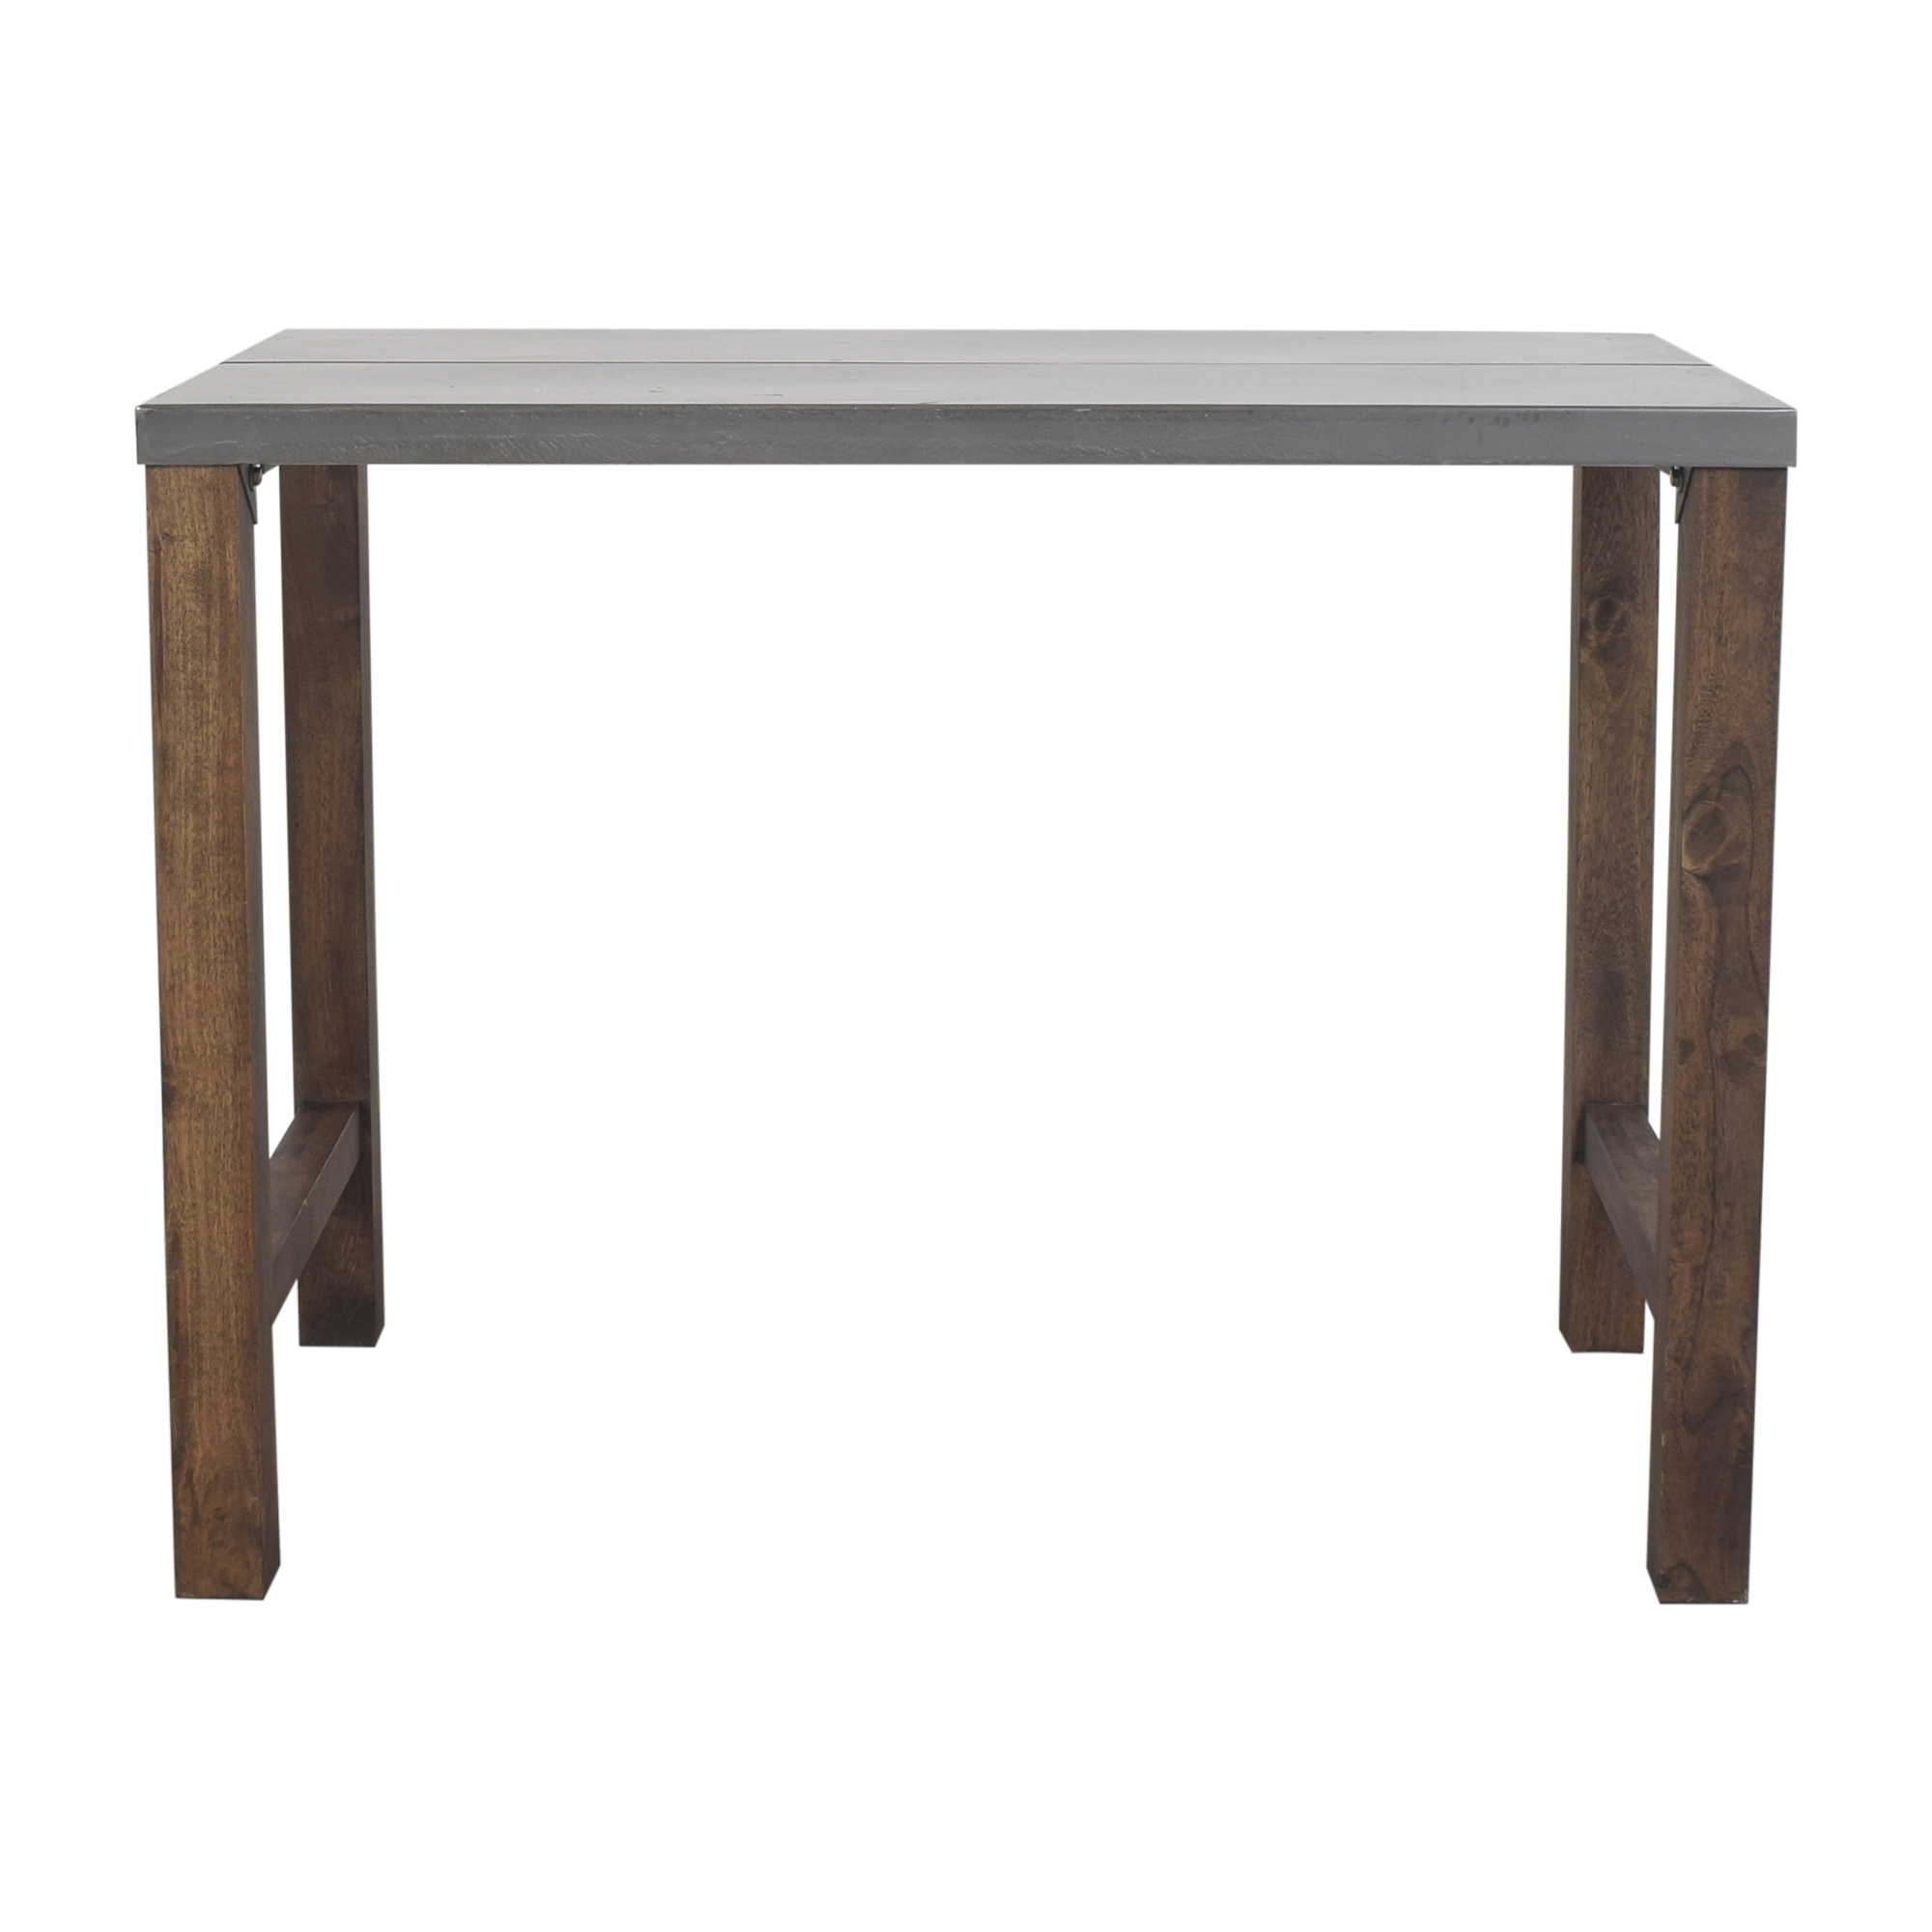 Crate & Barrel Crate & Barrel Counter Height Table